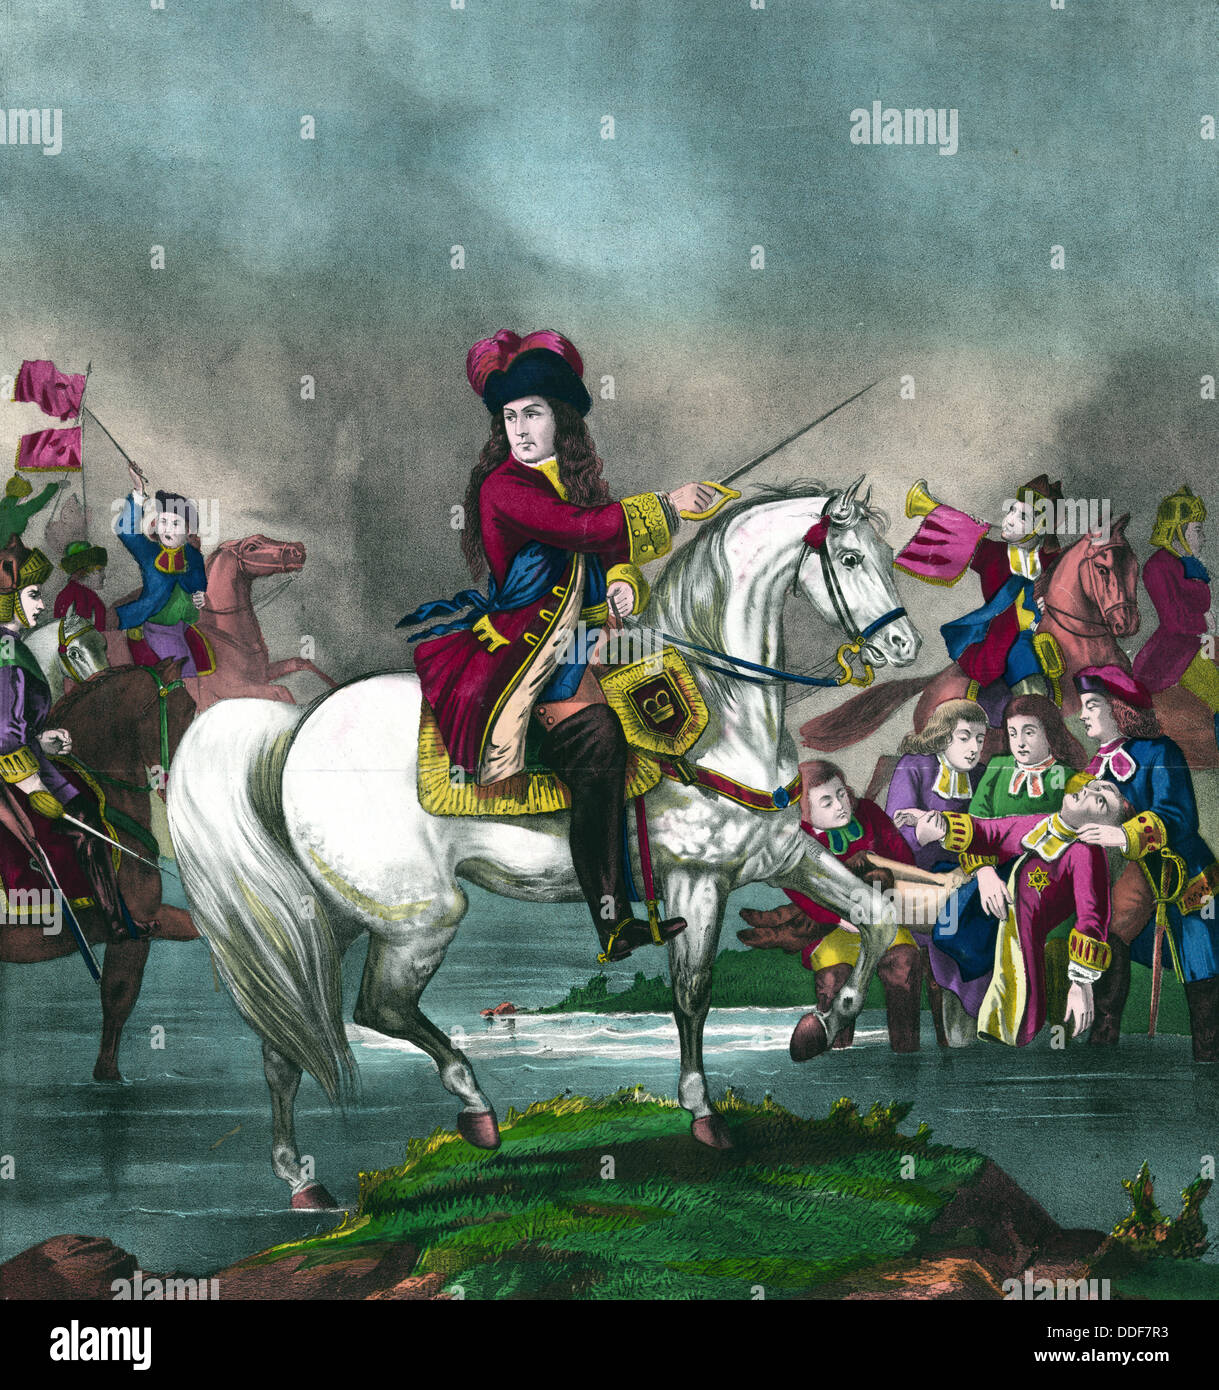 King William III at the battle of the Boyne Stock Photo